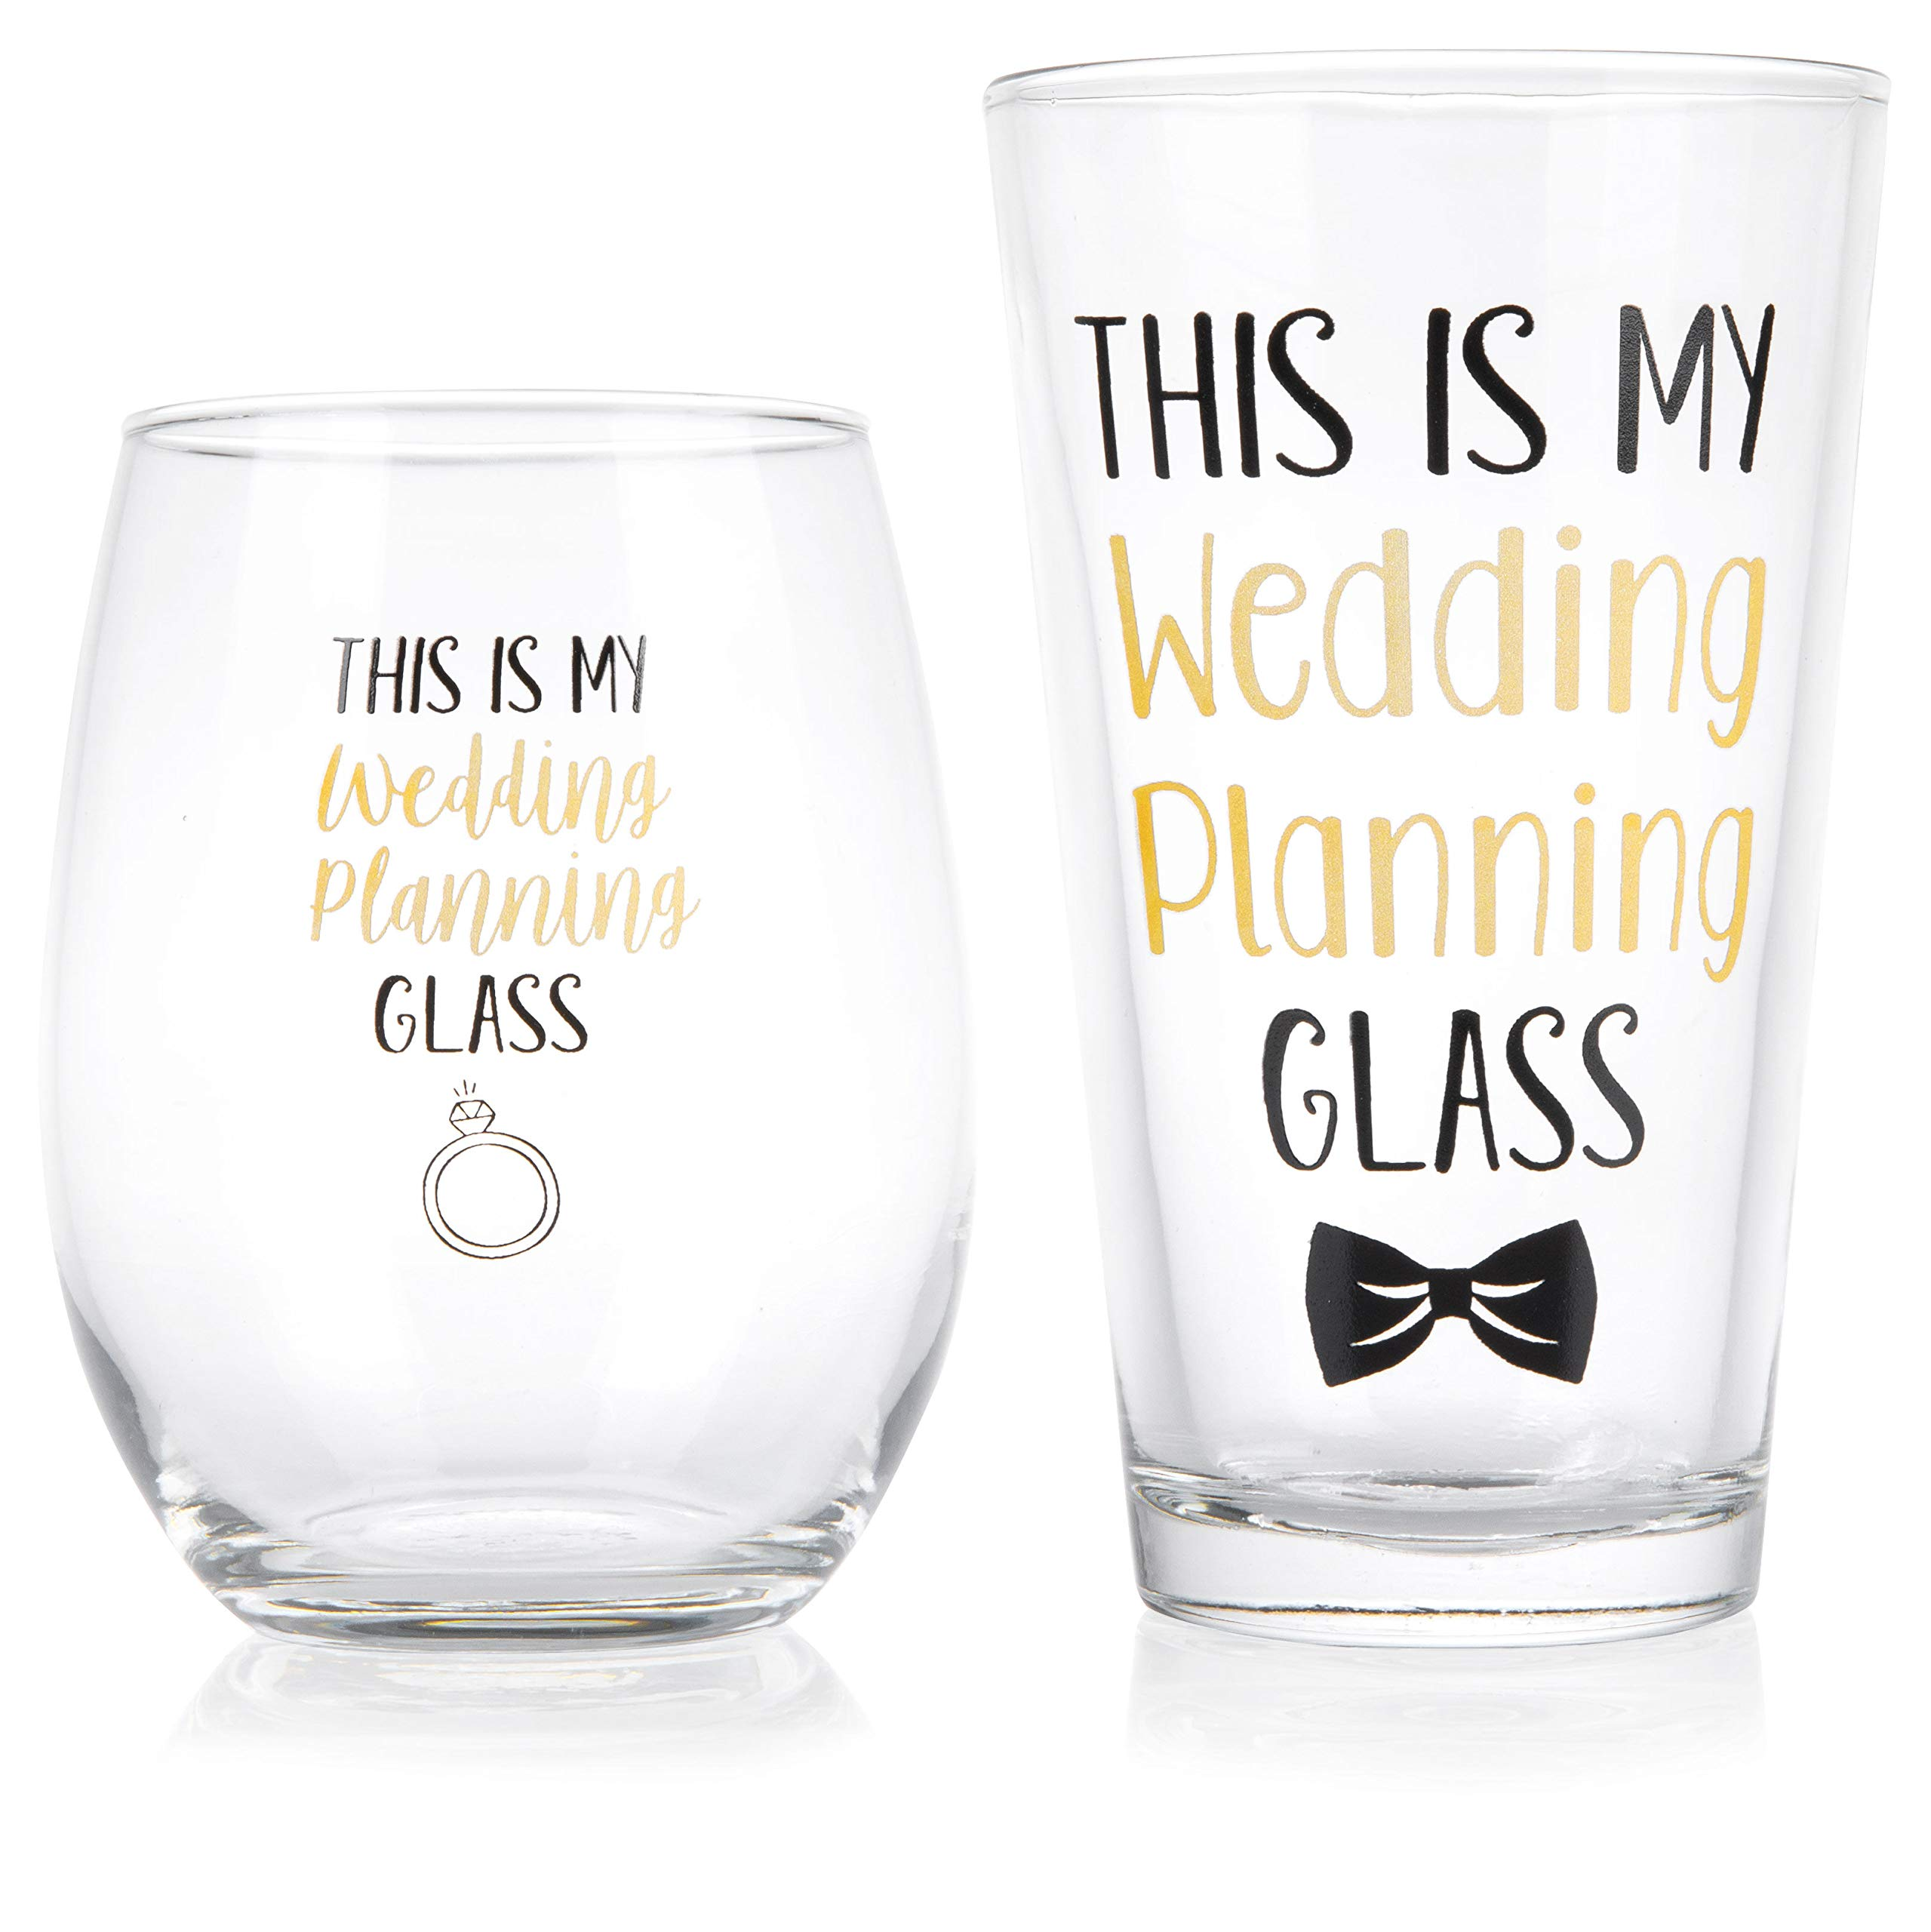 This Is My Wedding Planning Glass Set - Engagement Gift Set for the Couple - Mr & Mrs Gift - Bride and Groom To Be - 16 oz. Pint Glass, 21 oz. Wine Glass (Set of 2) by Gelid (Image #1)